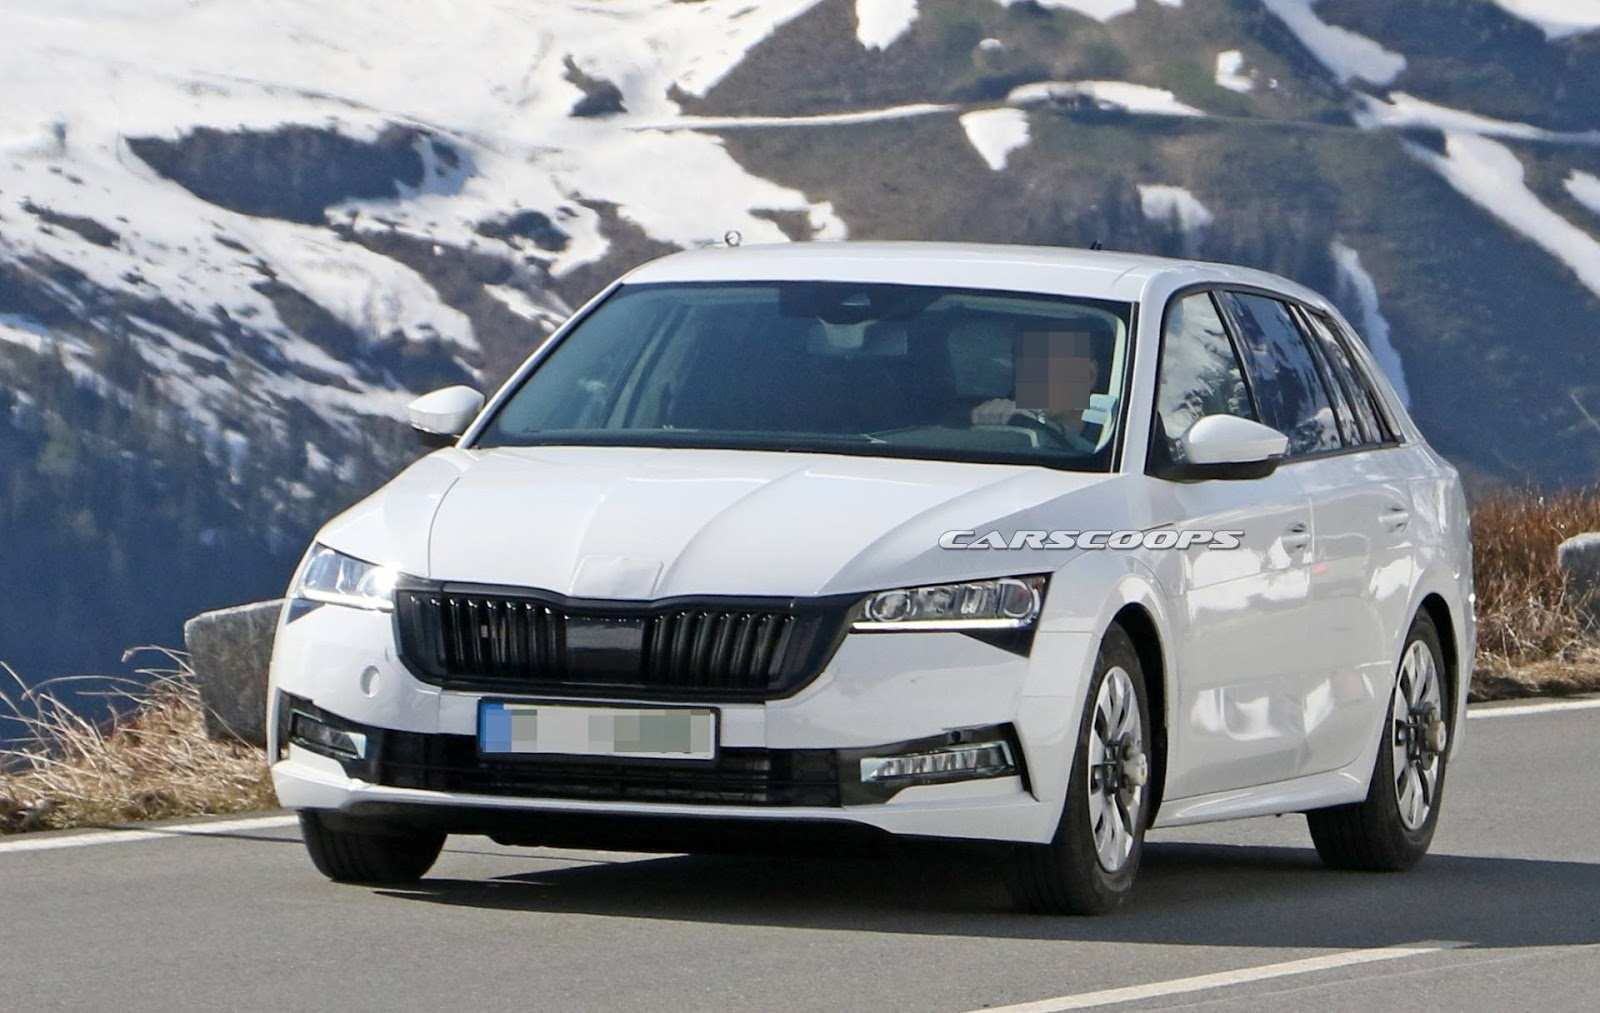 60 New 2020 The Spy Shots Skoda Superb Overview